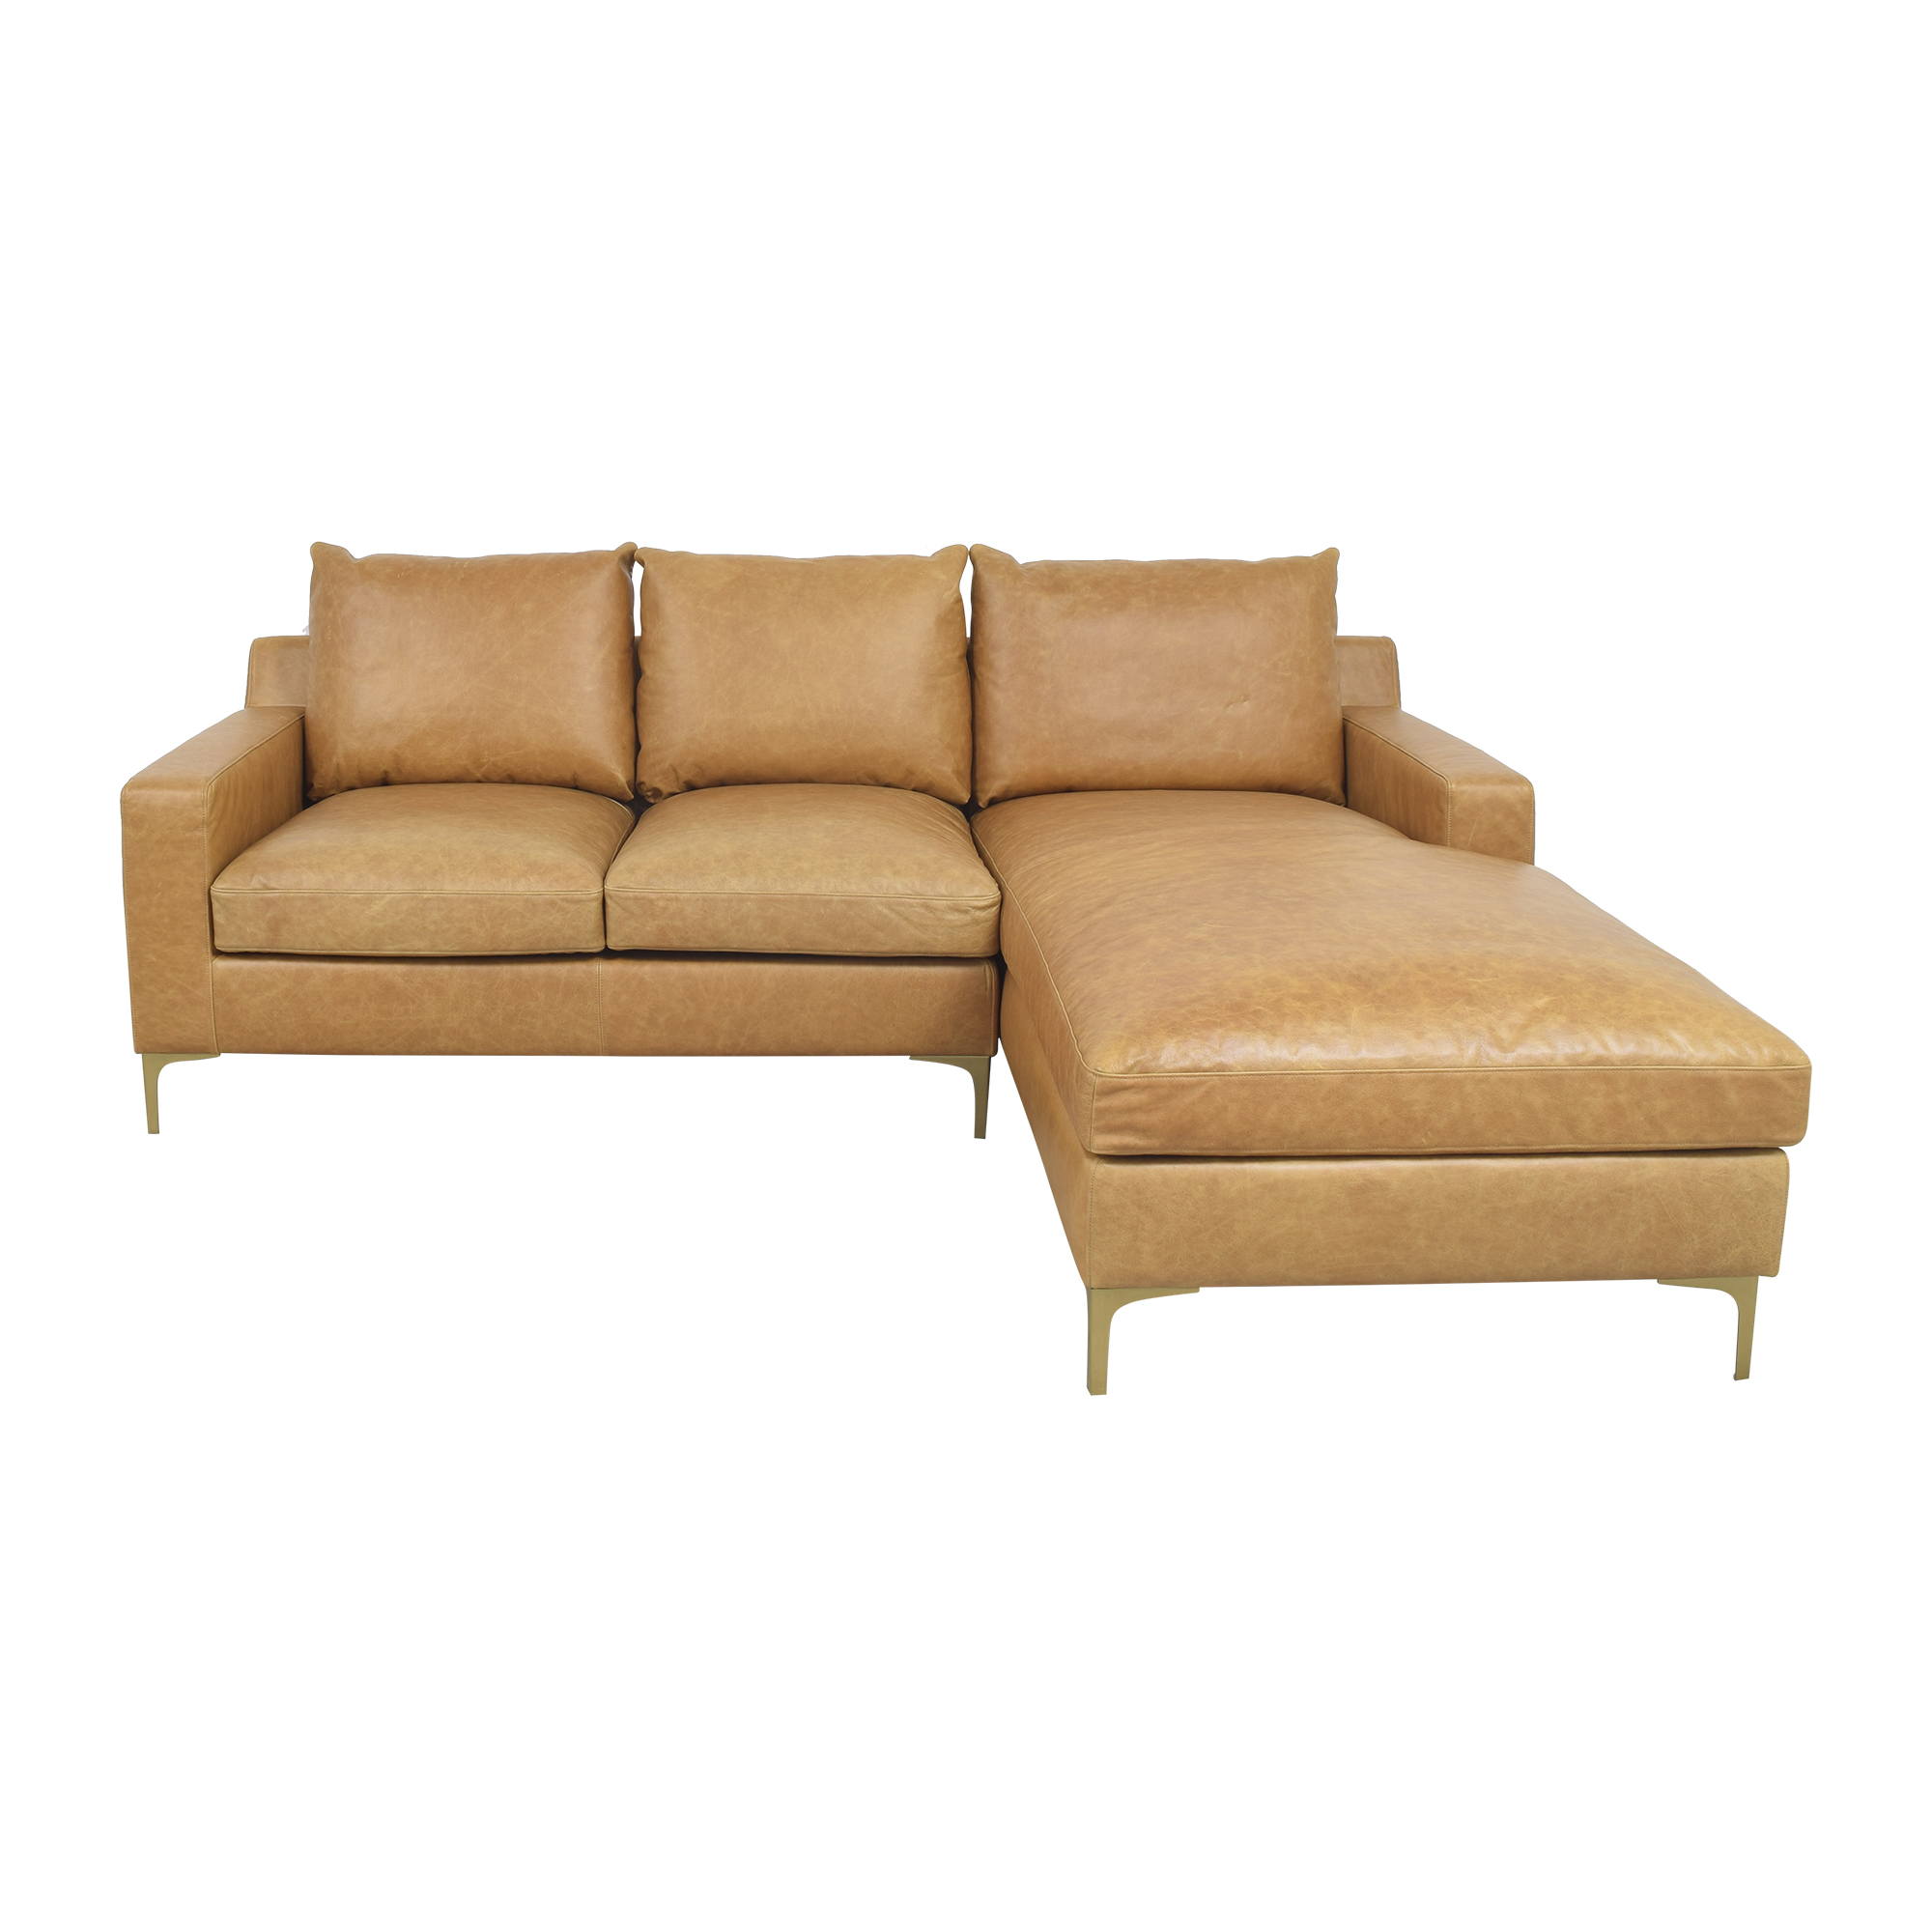 Interior Define Interior Define Sloan Sectional Sofa with Chaise brown